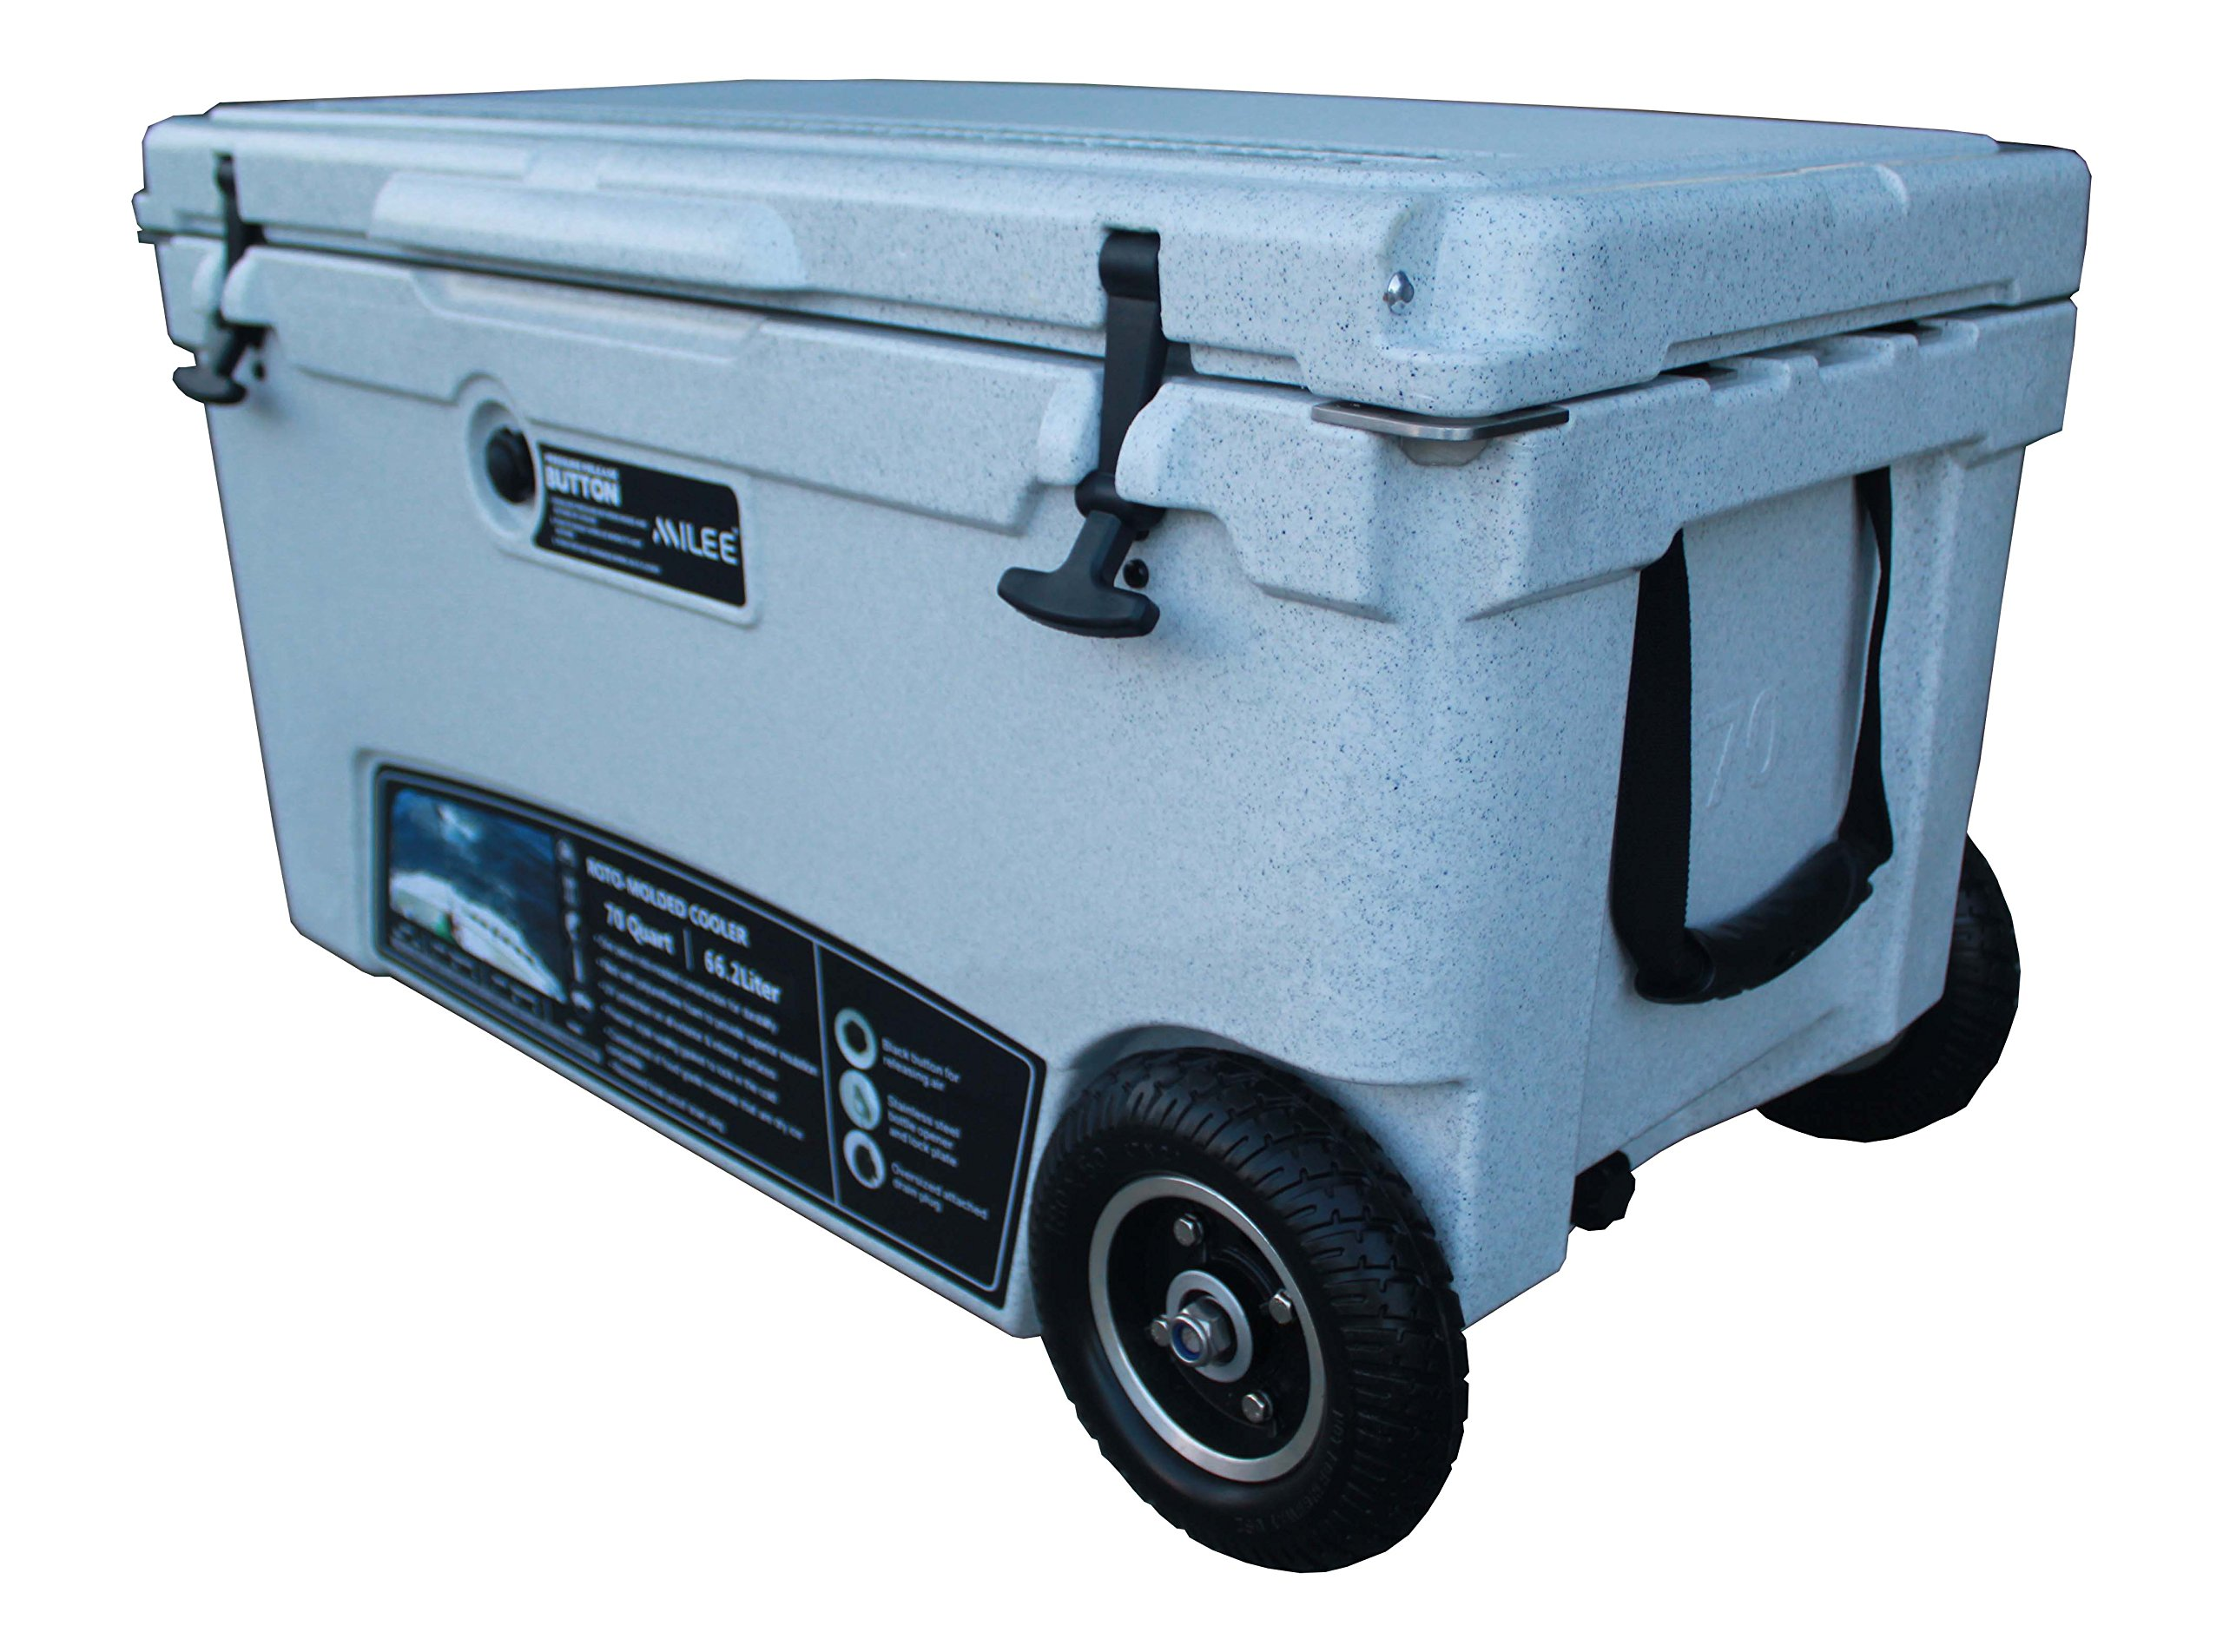 MILEE--Wheeled Cooler 70QT Marble (included $50 accessories) Hanging Wire Basket ,Cooler Divider and Cup Holder are free. by MILEE